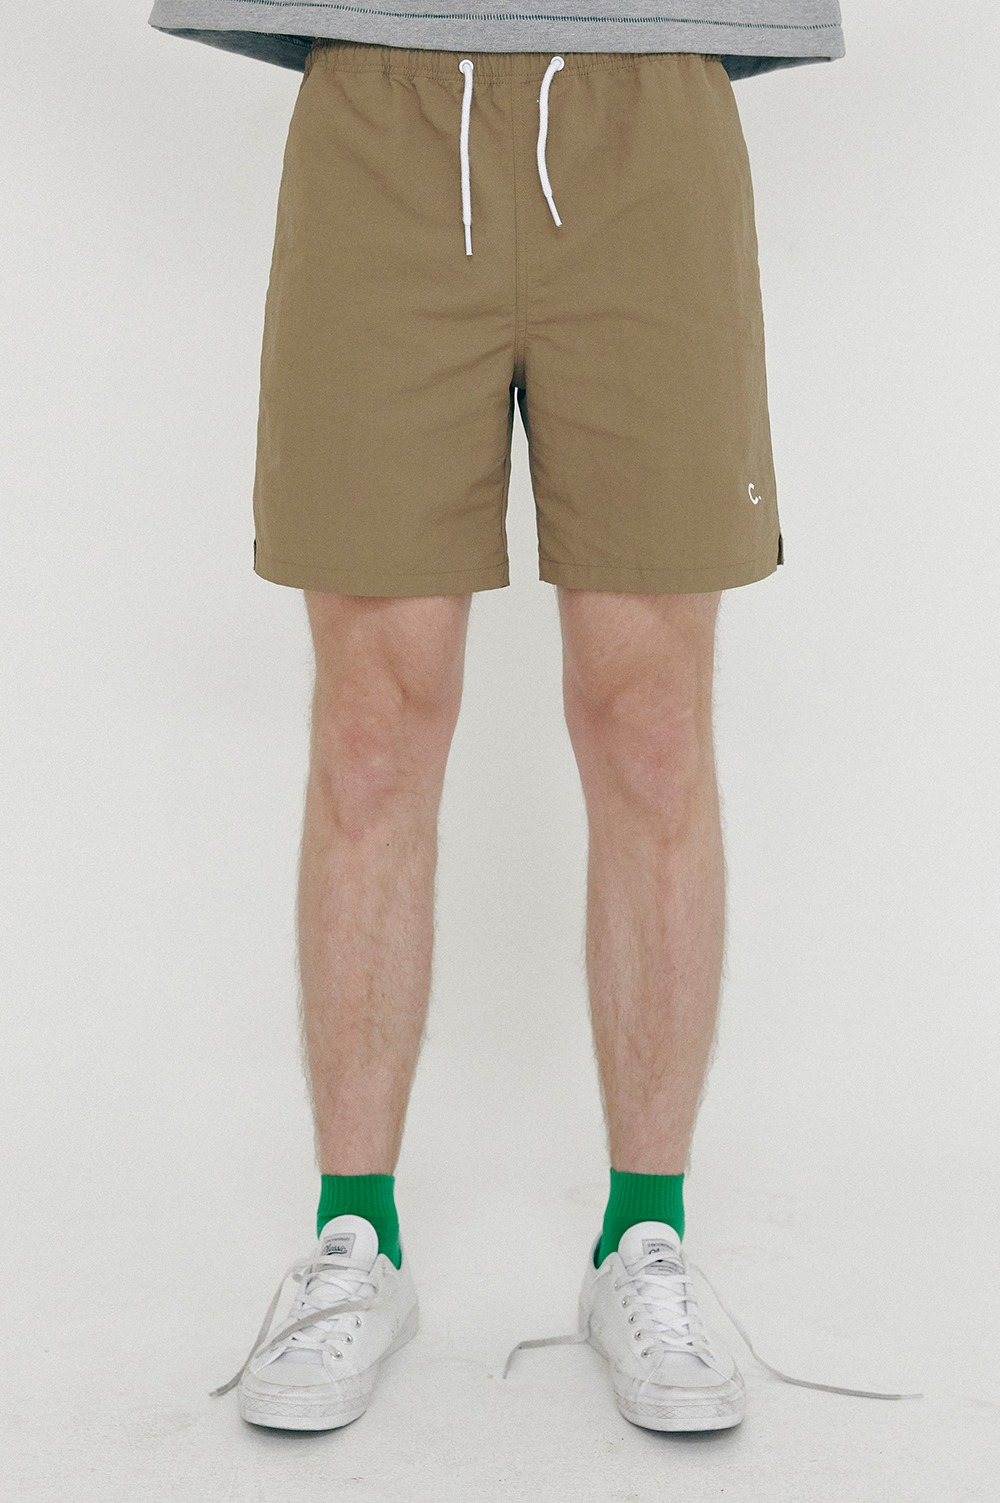 clove - [SS21 clove] New Summer Shorts_Men Khaki